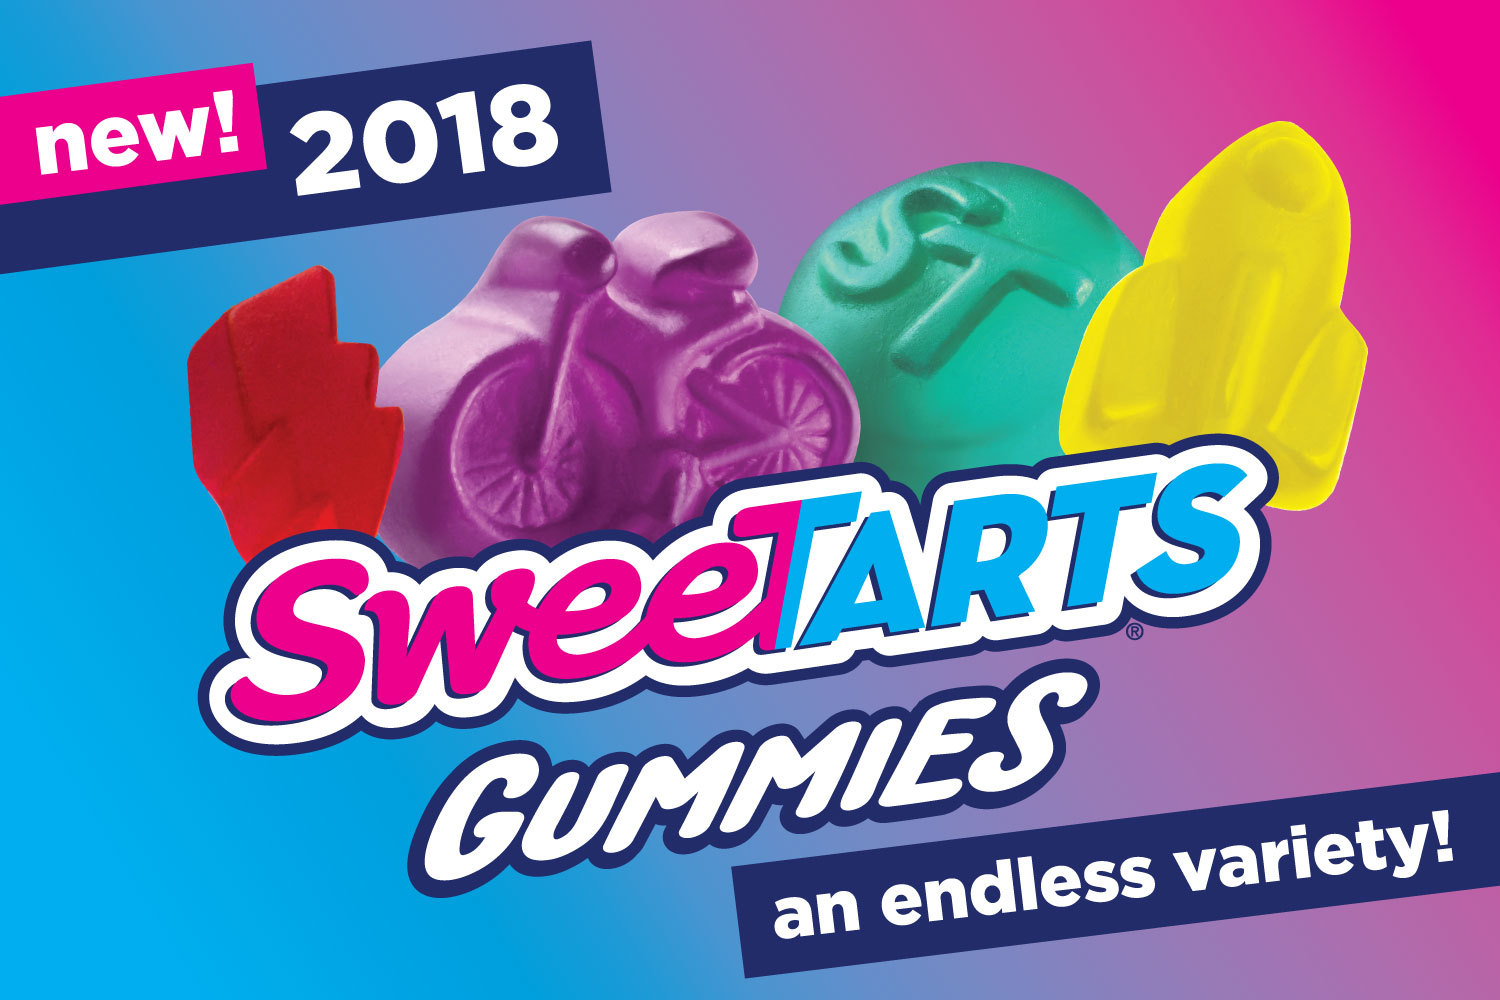 SweeTARTS unveiled SweeTARTS Gummies in an endless variety of shapes with innovative art mosaic installation (Graphic: Business Wire)